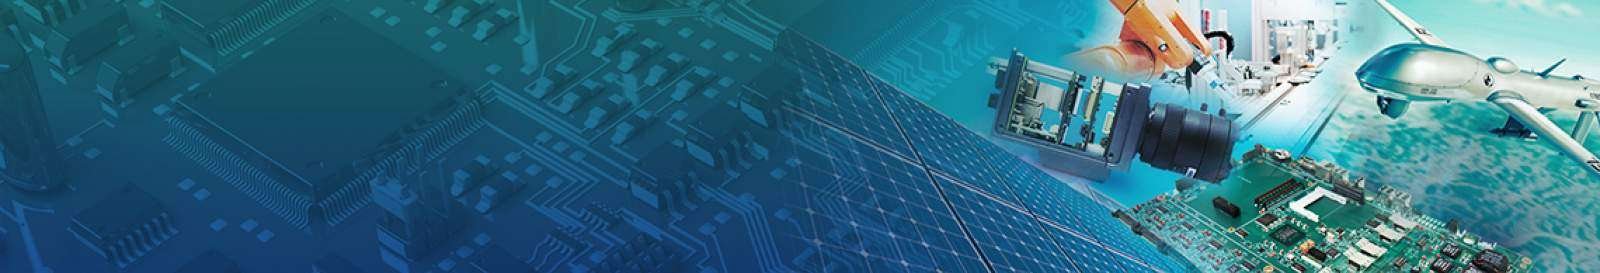 embedded-software-services